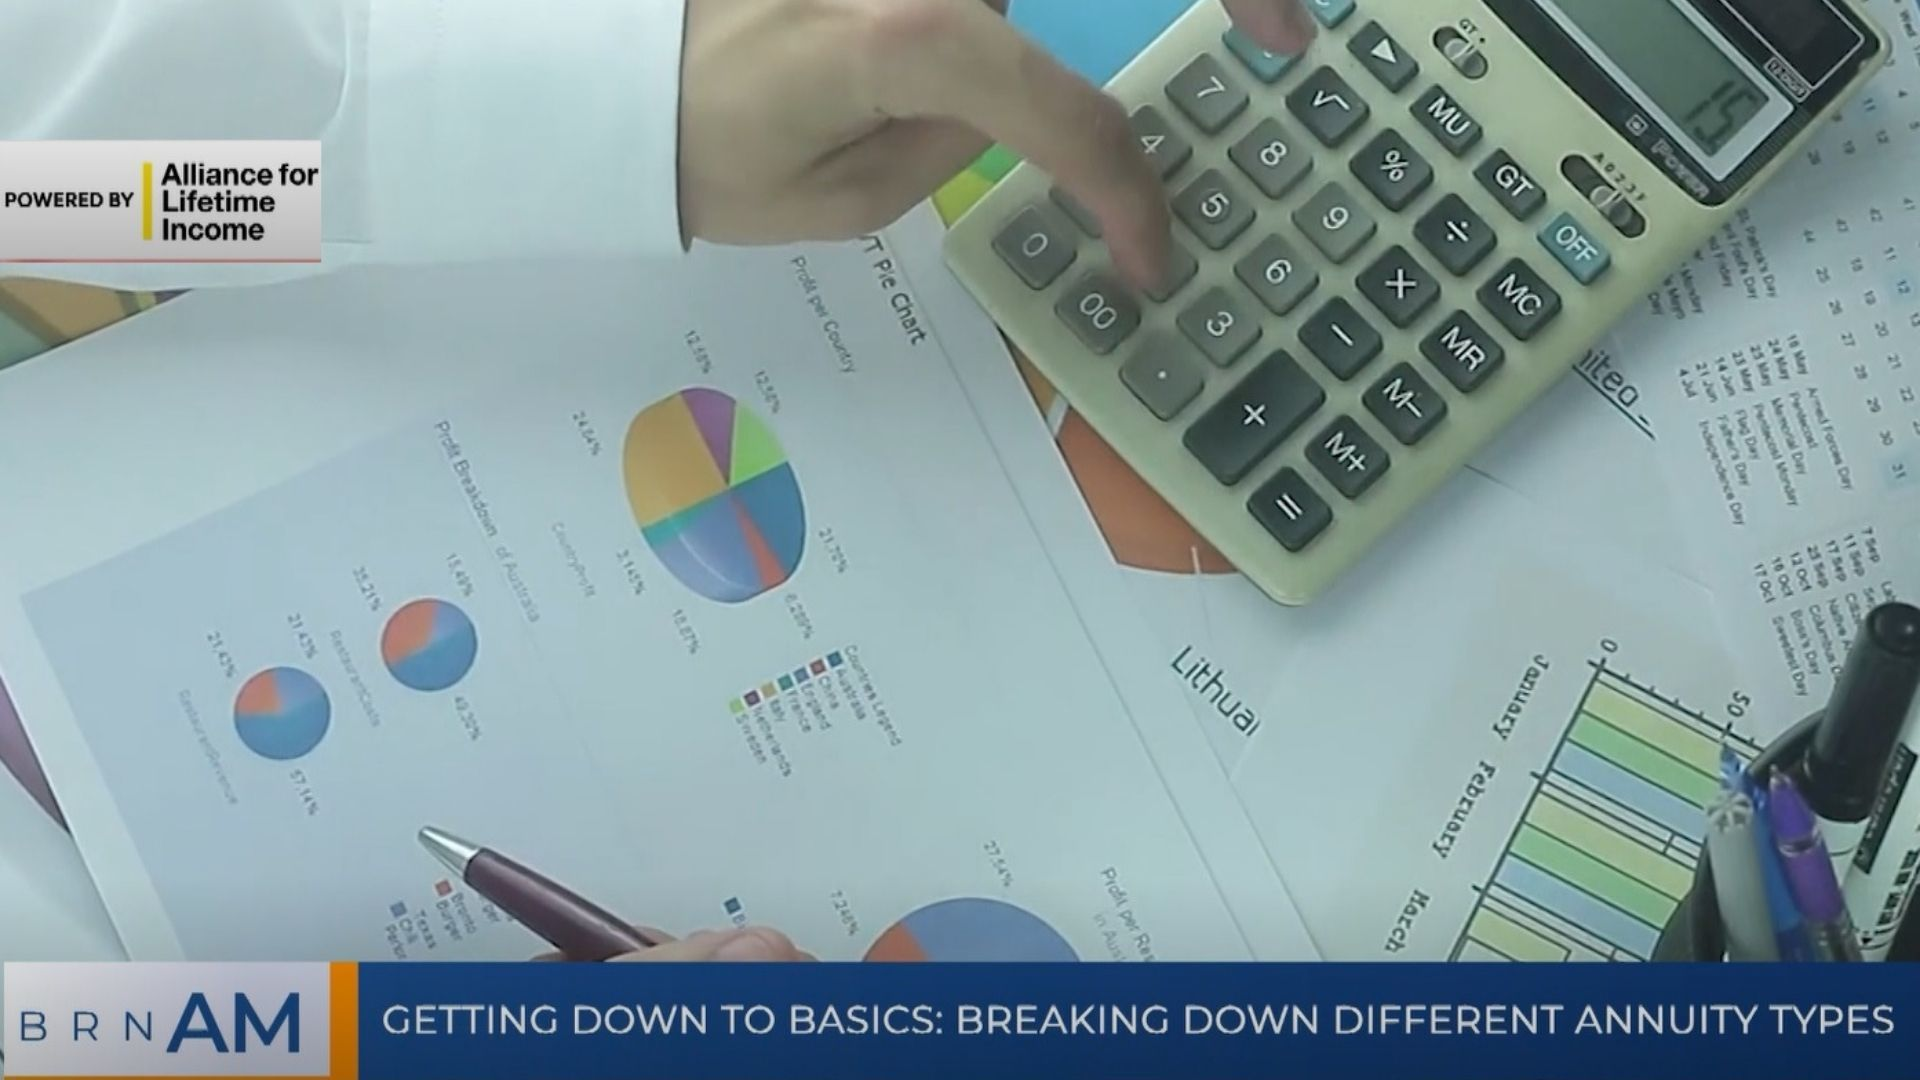 BRN AM   Getting down to basics: Breaking down different annuity types